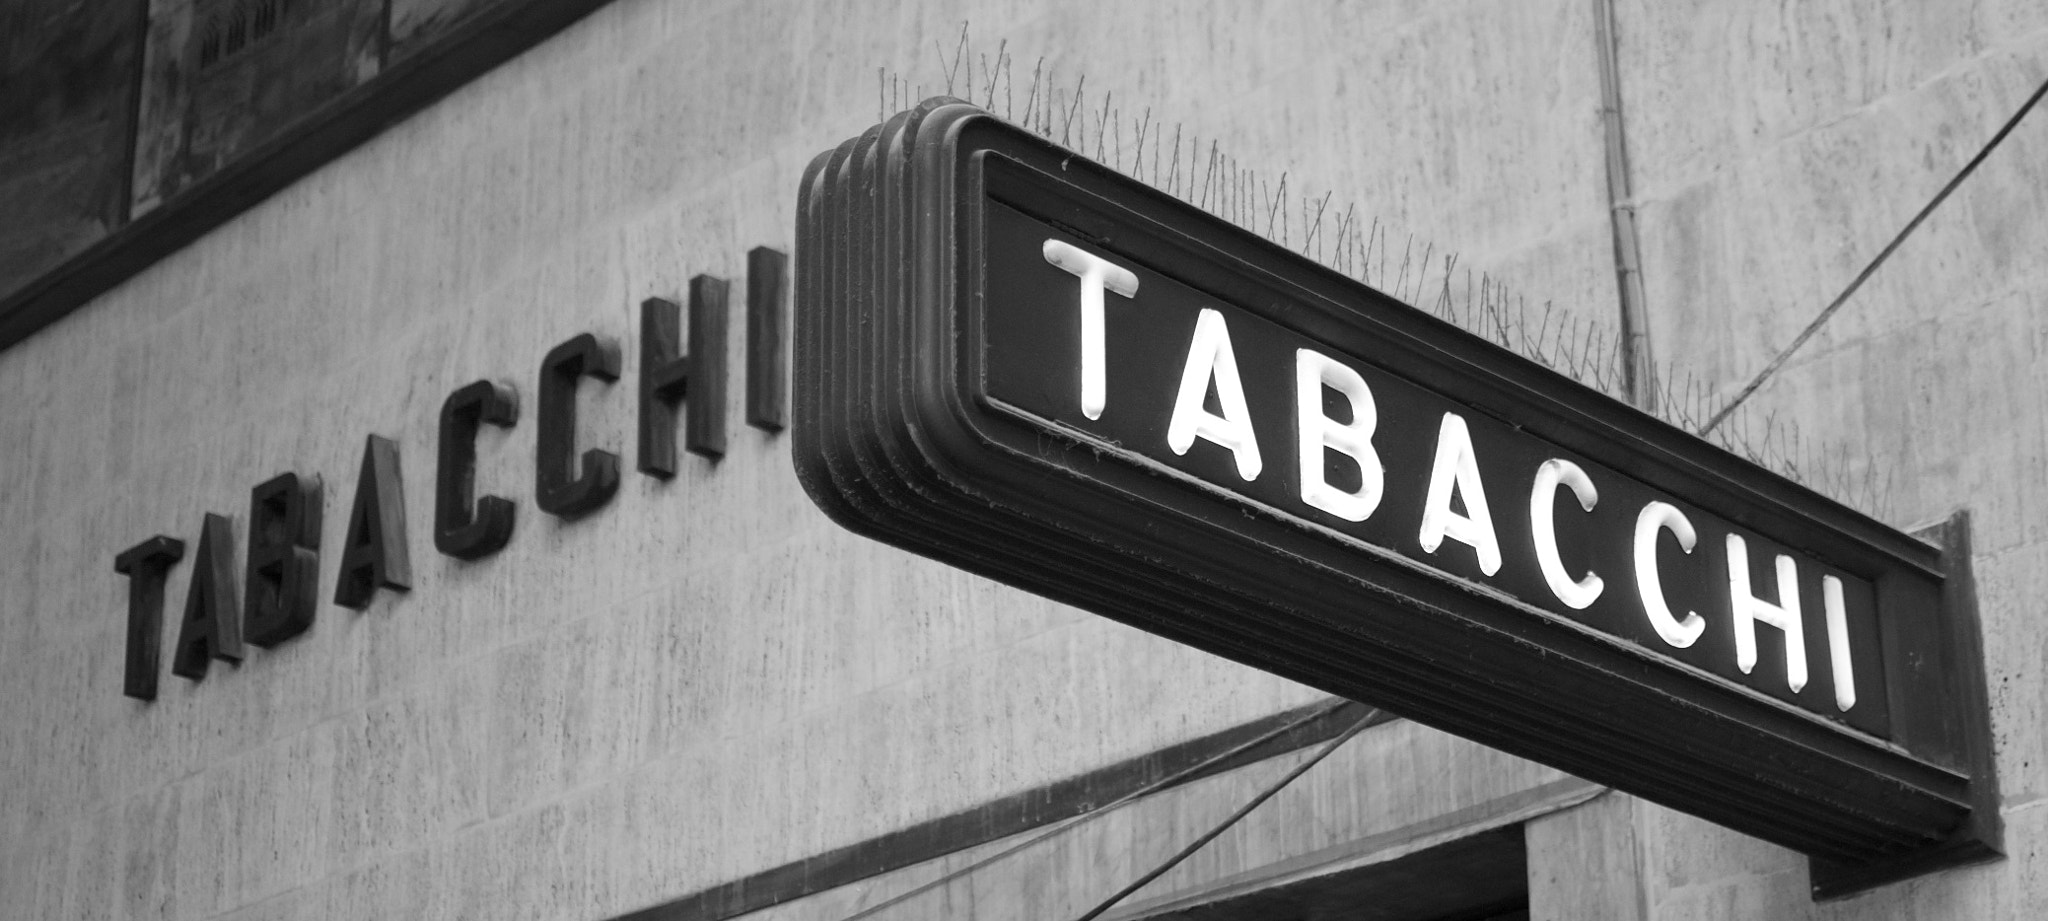 Photograph Tabacchi Tabacchi by Christian Hayes on 500px